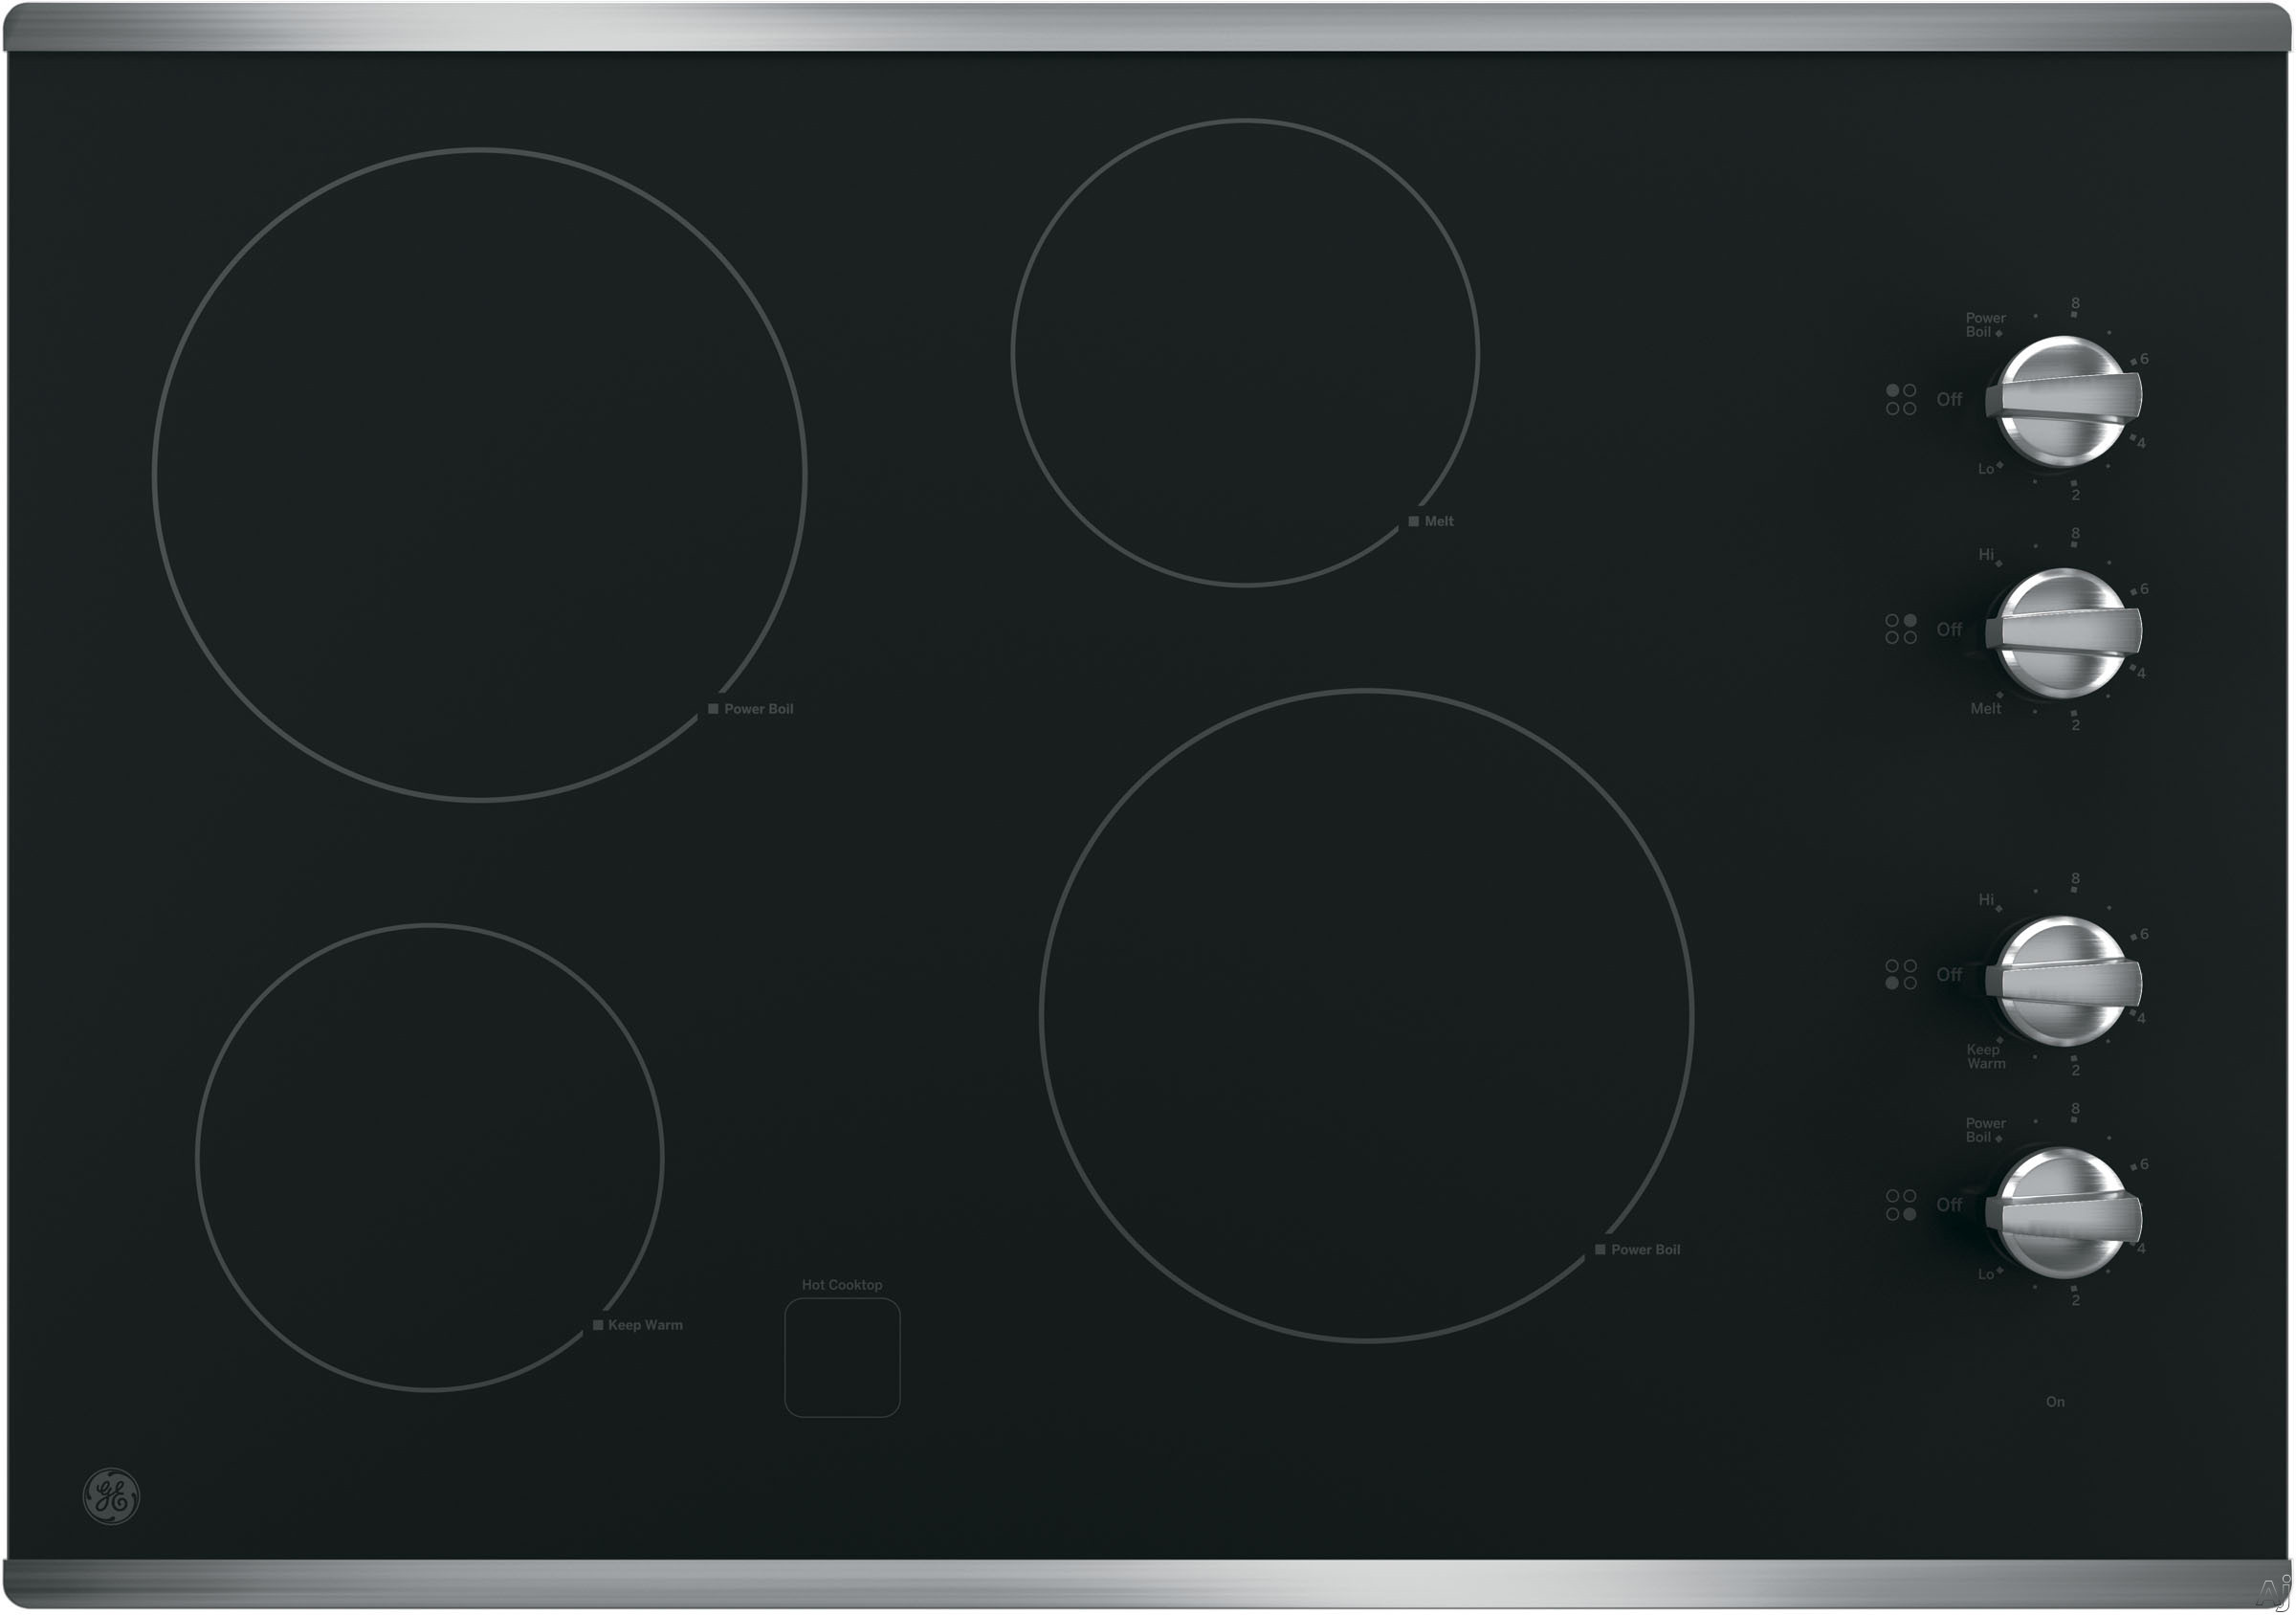 GE JP3030SJSS 30 Inch Smoothtop Electric Cooktop with 4 Radiant Elements, Knob Controls, Keep Warm Setting, Melt Setting, ADA Compliant and GE Fits! Guarantee: Stainless Steel